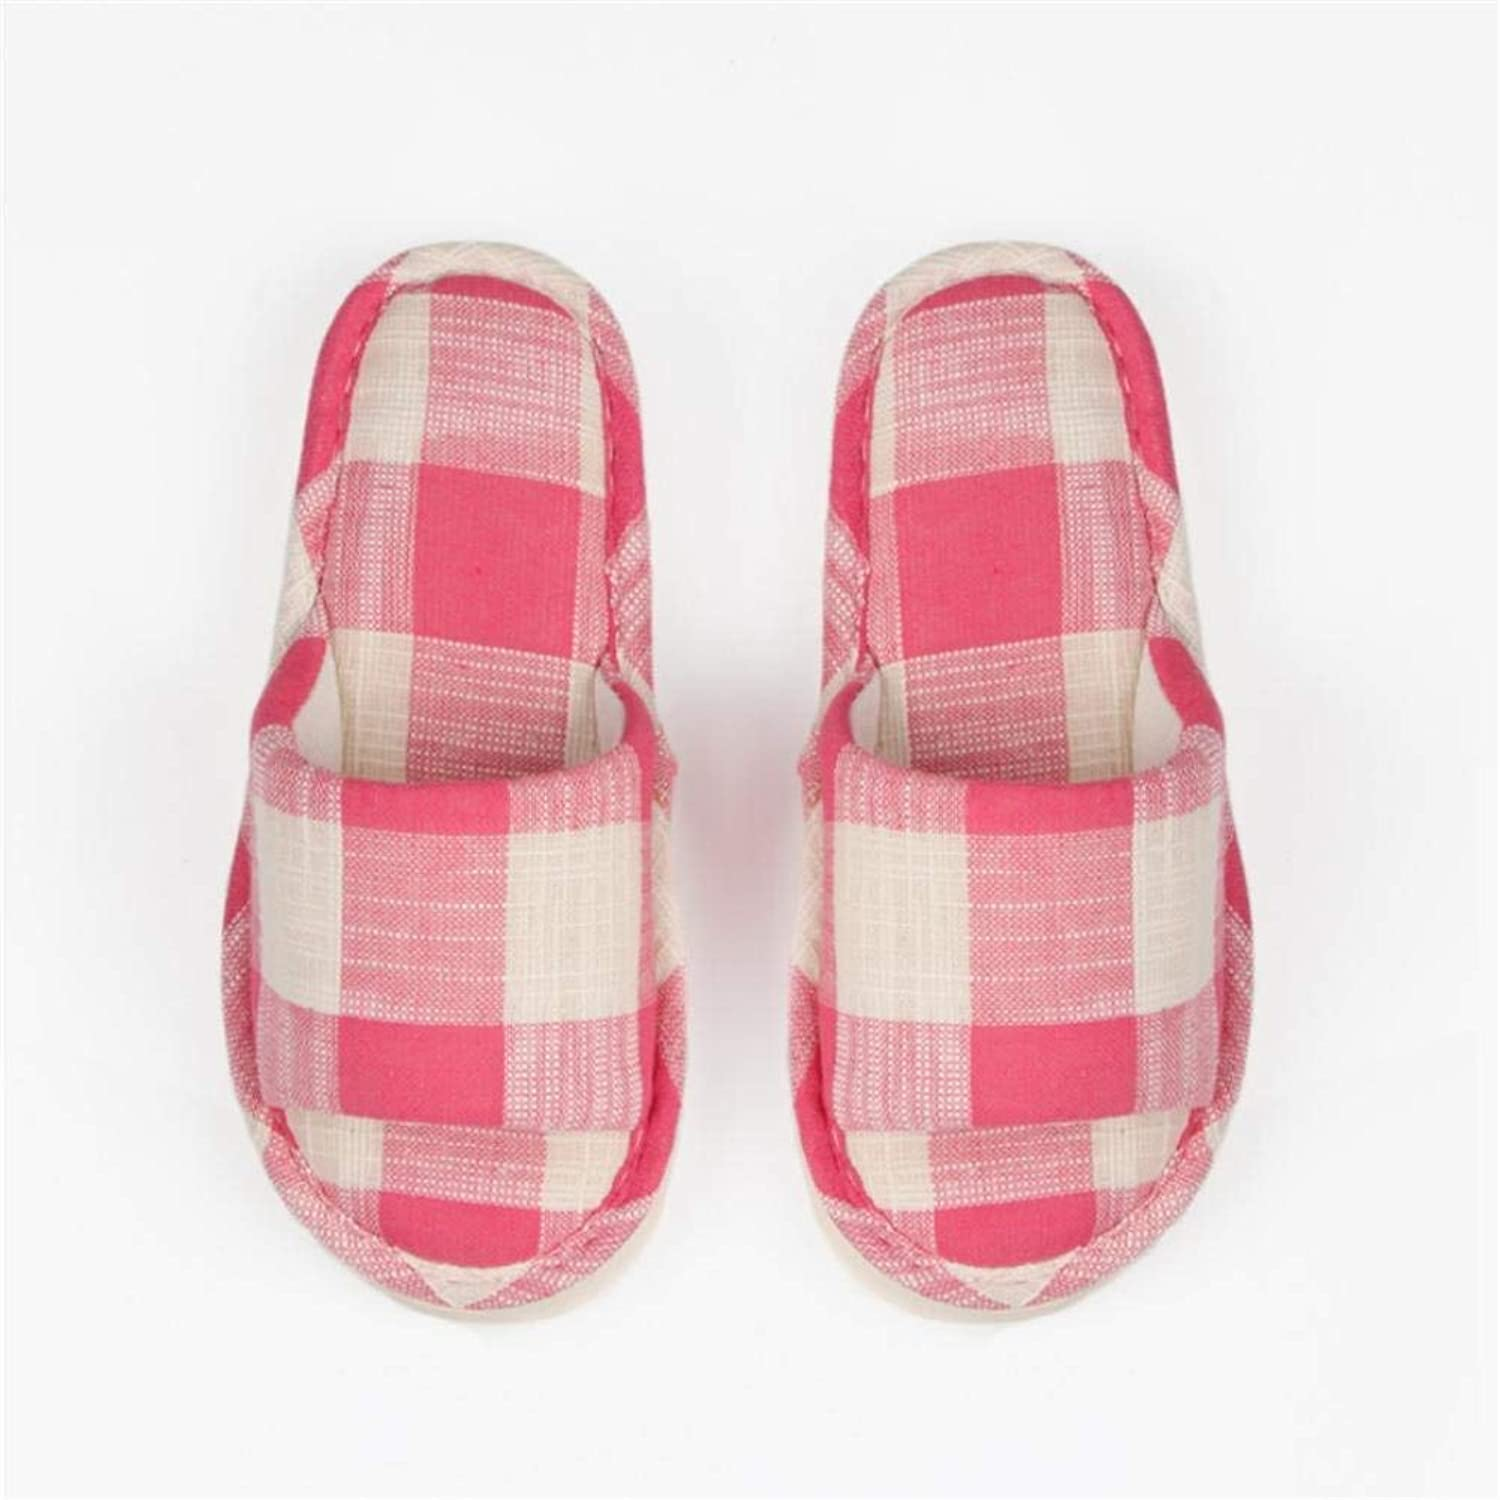 So8ooa Lady Slippers Home Indoor Lady Leisure Skid Linen Slipper Pink Red Yellow Fashion Personality Creativity Slipper for Women